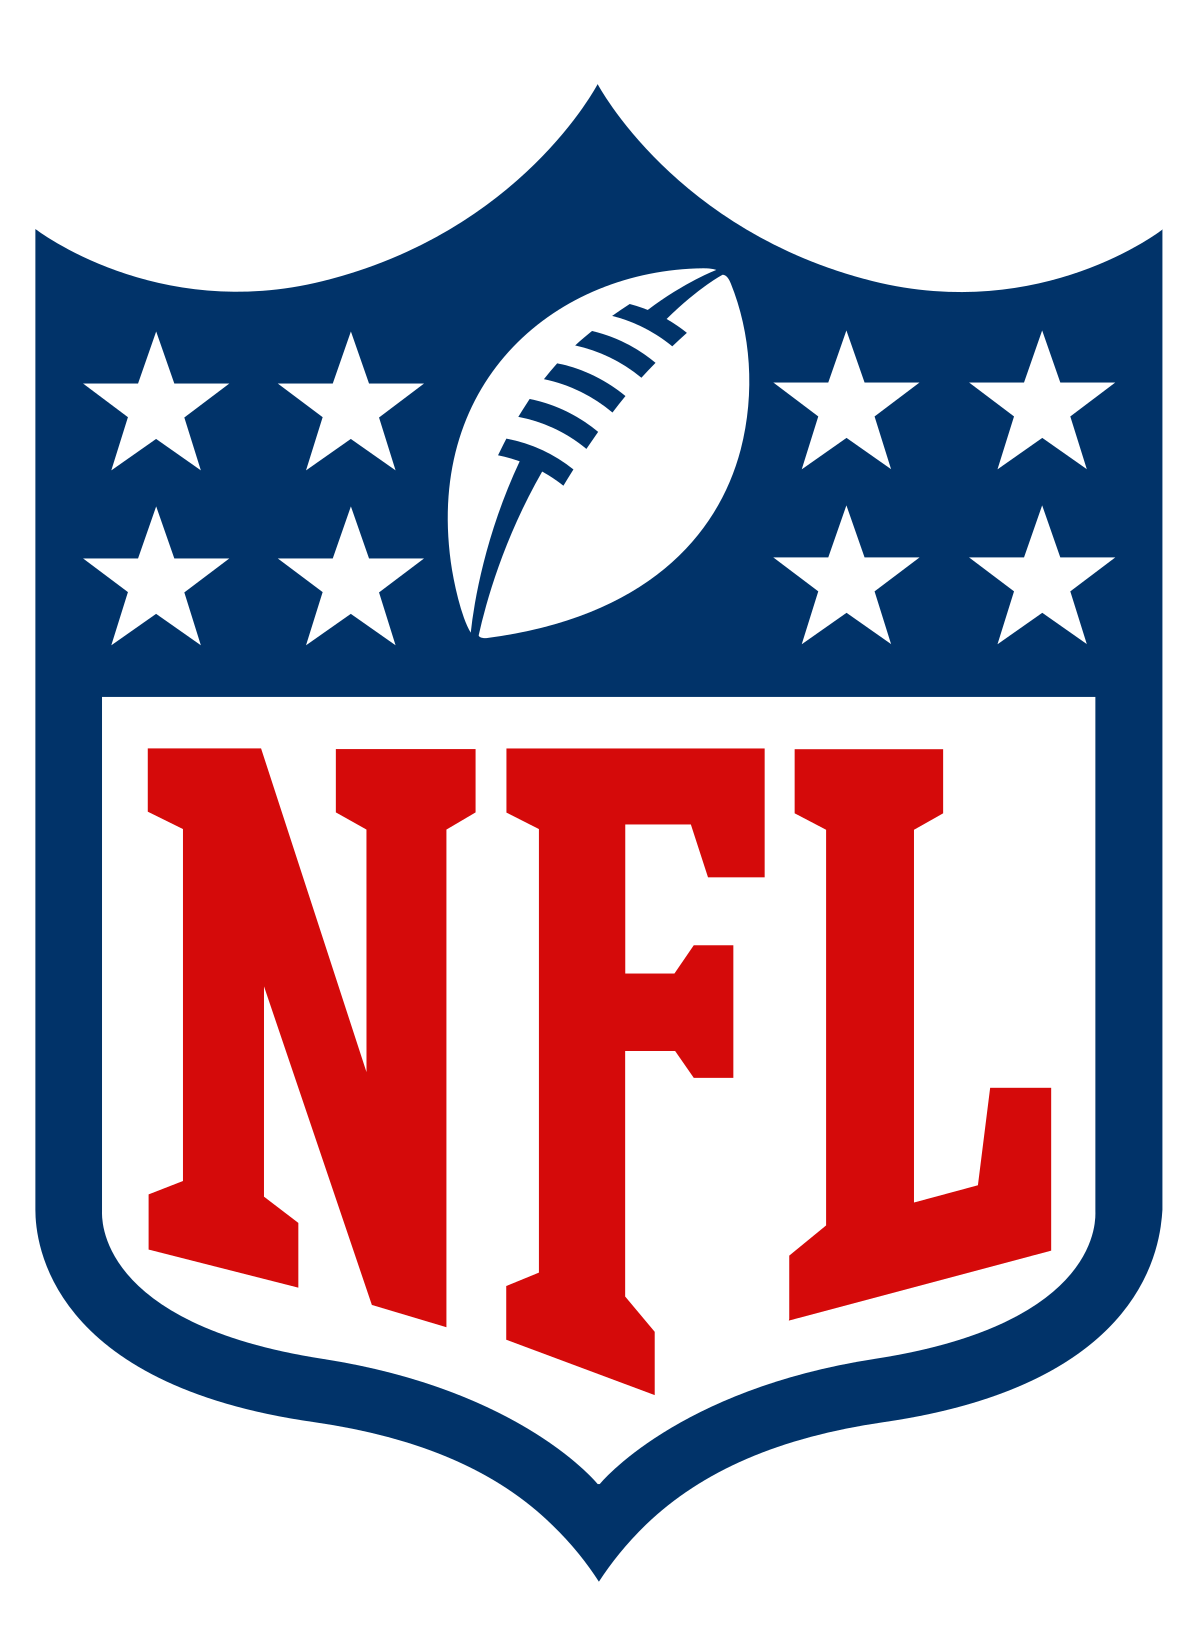 Nfl logo 2017 png. National football league wikipedia